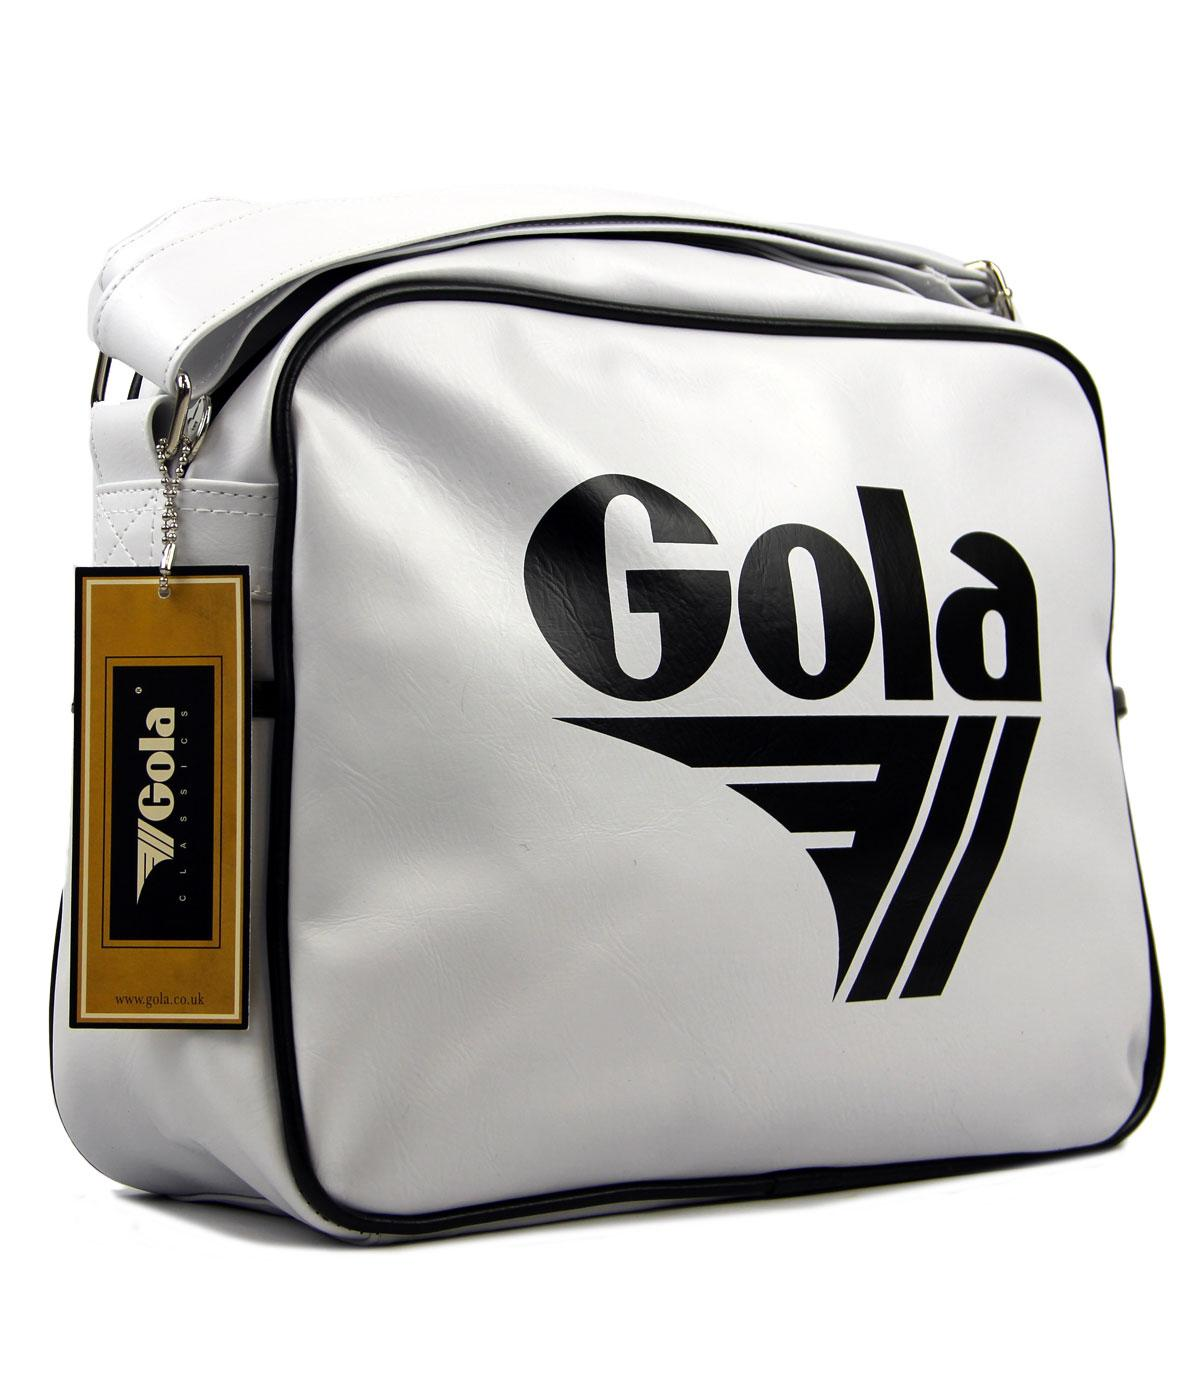 GOLA Redford Retro 70s Sports Shoulder Bag WHT/BLK